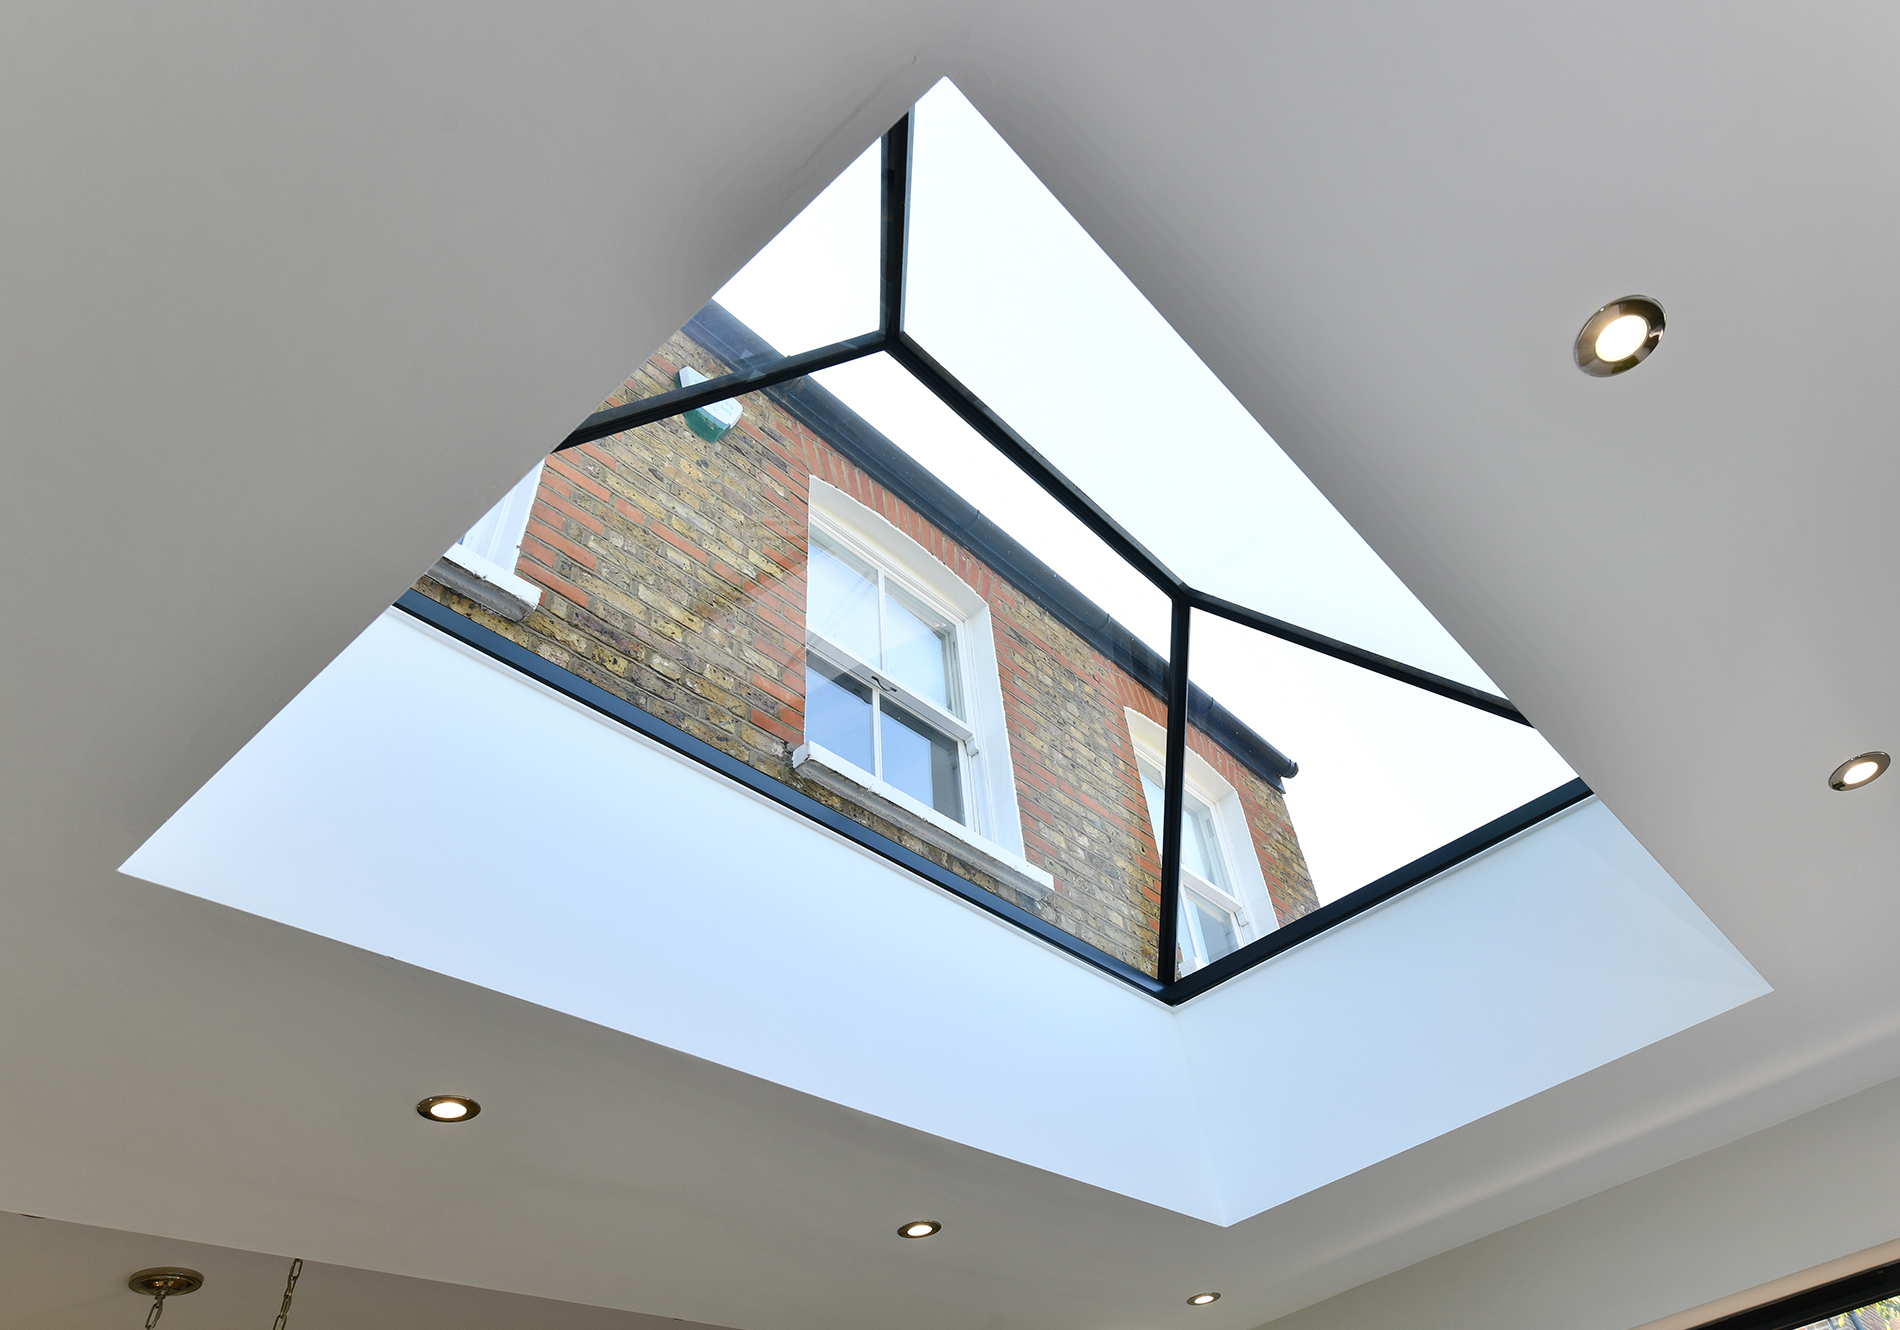 Pure Glass Lantern by Exact Architectural Glazing